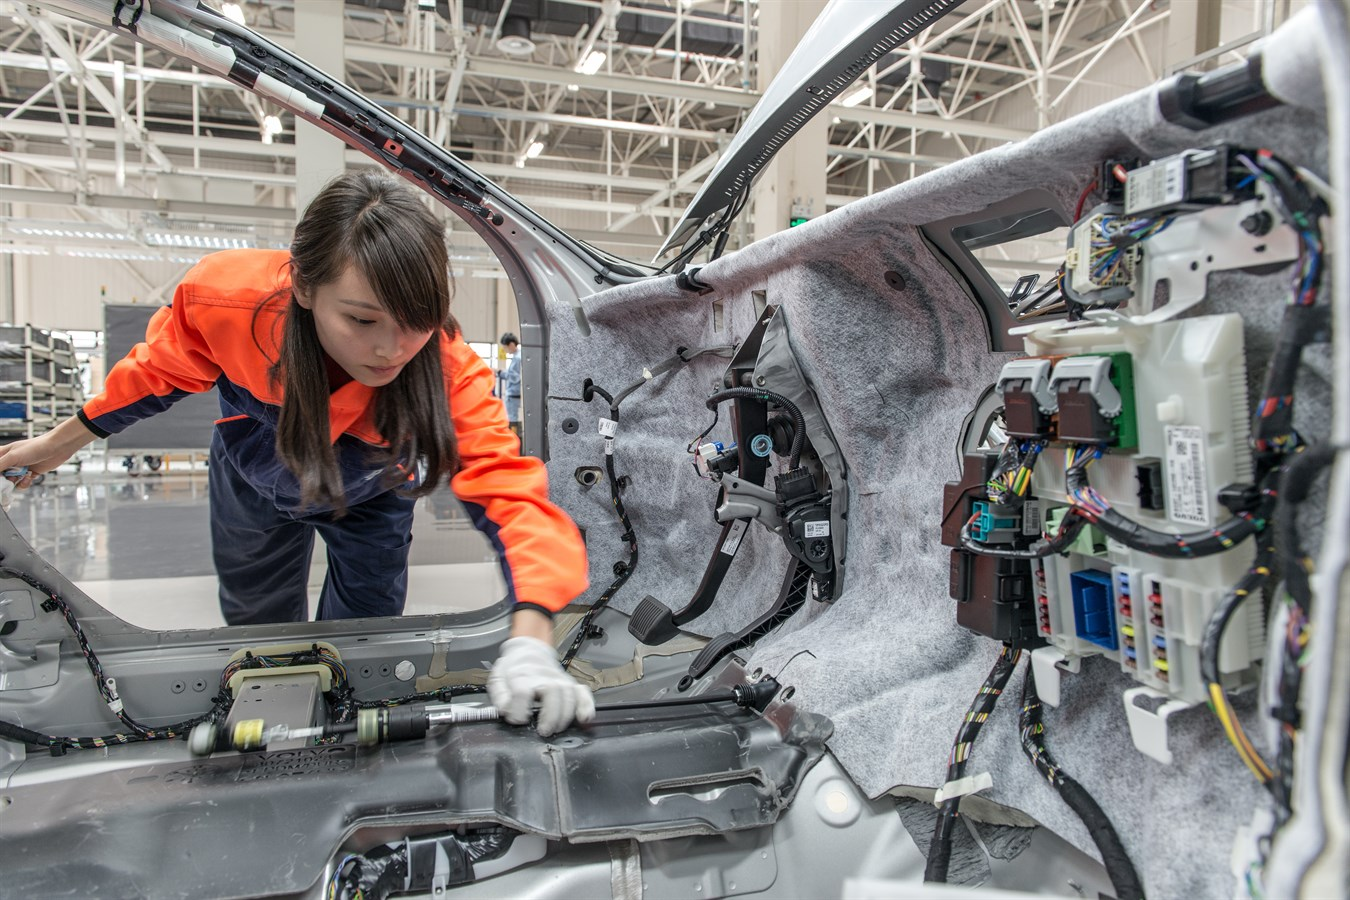 volvo group master thesis Doing your thesis work with the volvo group means you get to deal with interesting and important topics while making important contacts for your further career it also gives you a foot in with us if you have a thesis idea of your own, you can approach us to find a supporting manager who.